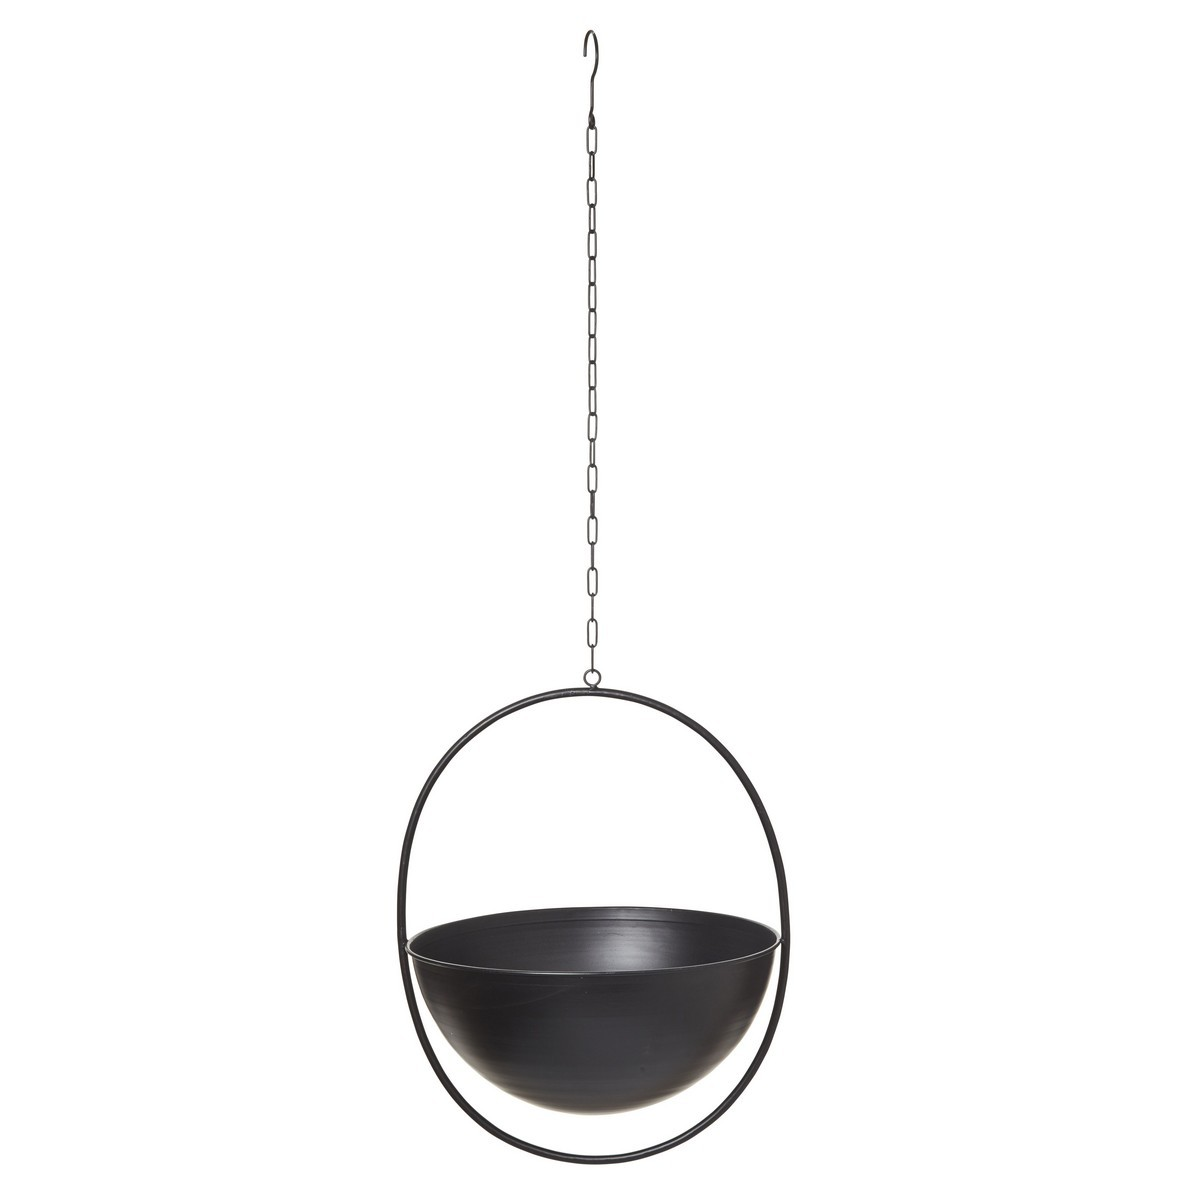 Harmony Metal Hanging Bowl Planter, Large, White-I